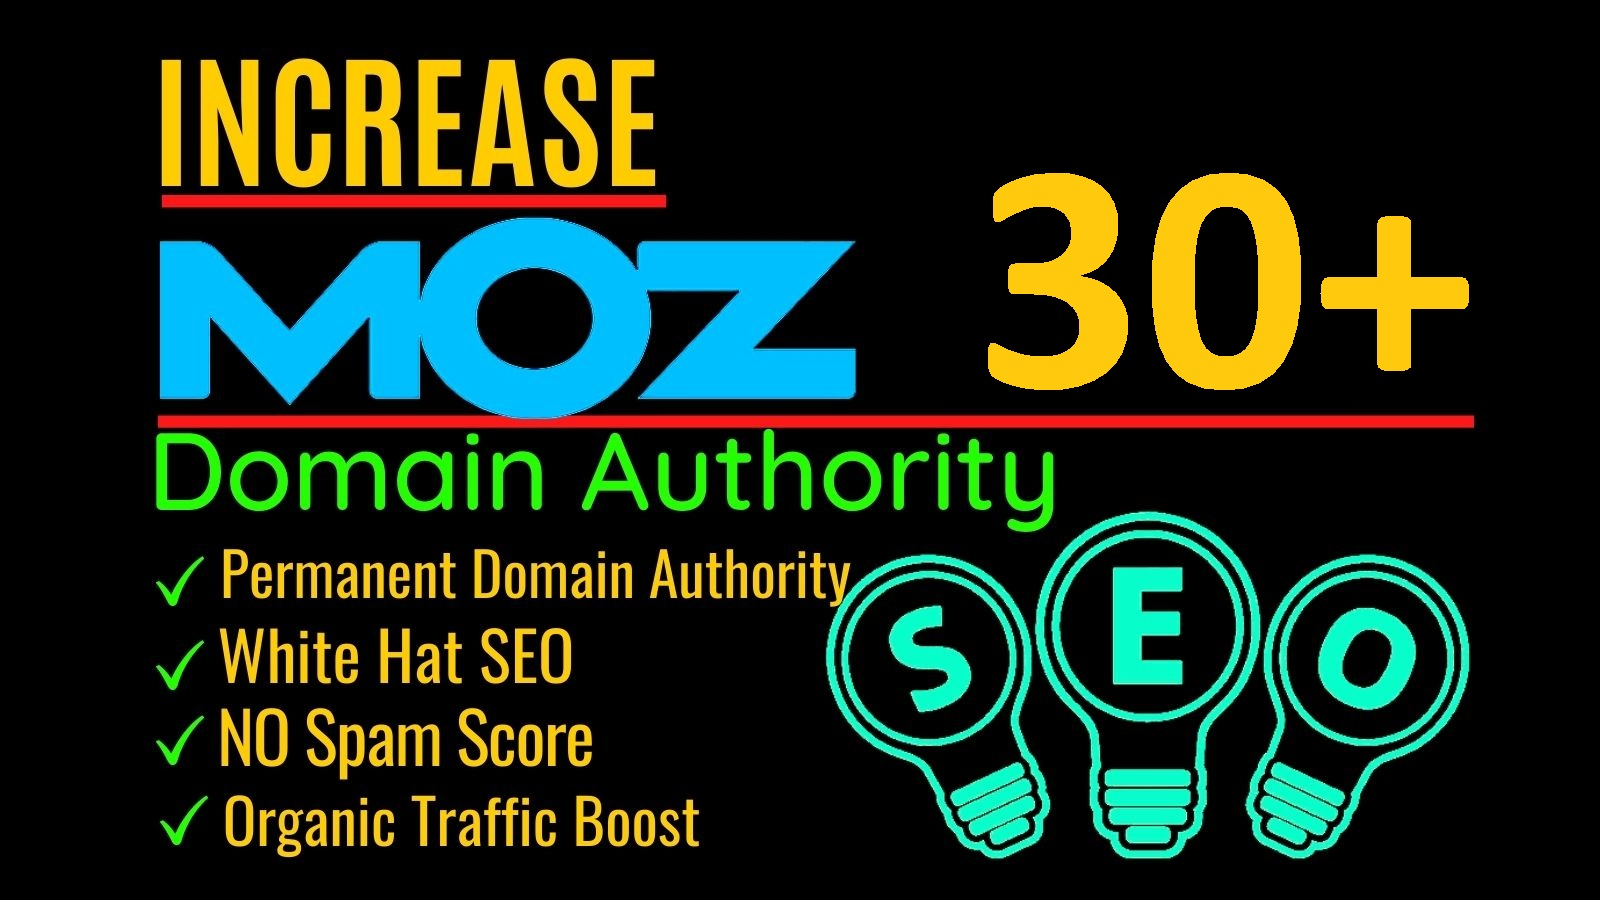 increase moz da domain authority up to 30 plus